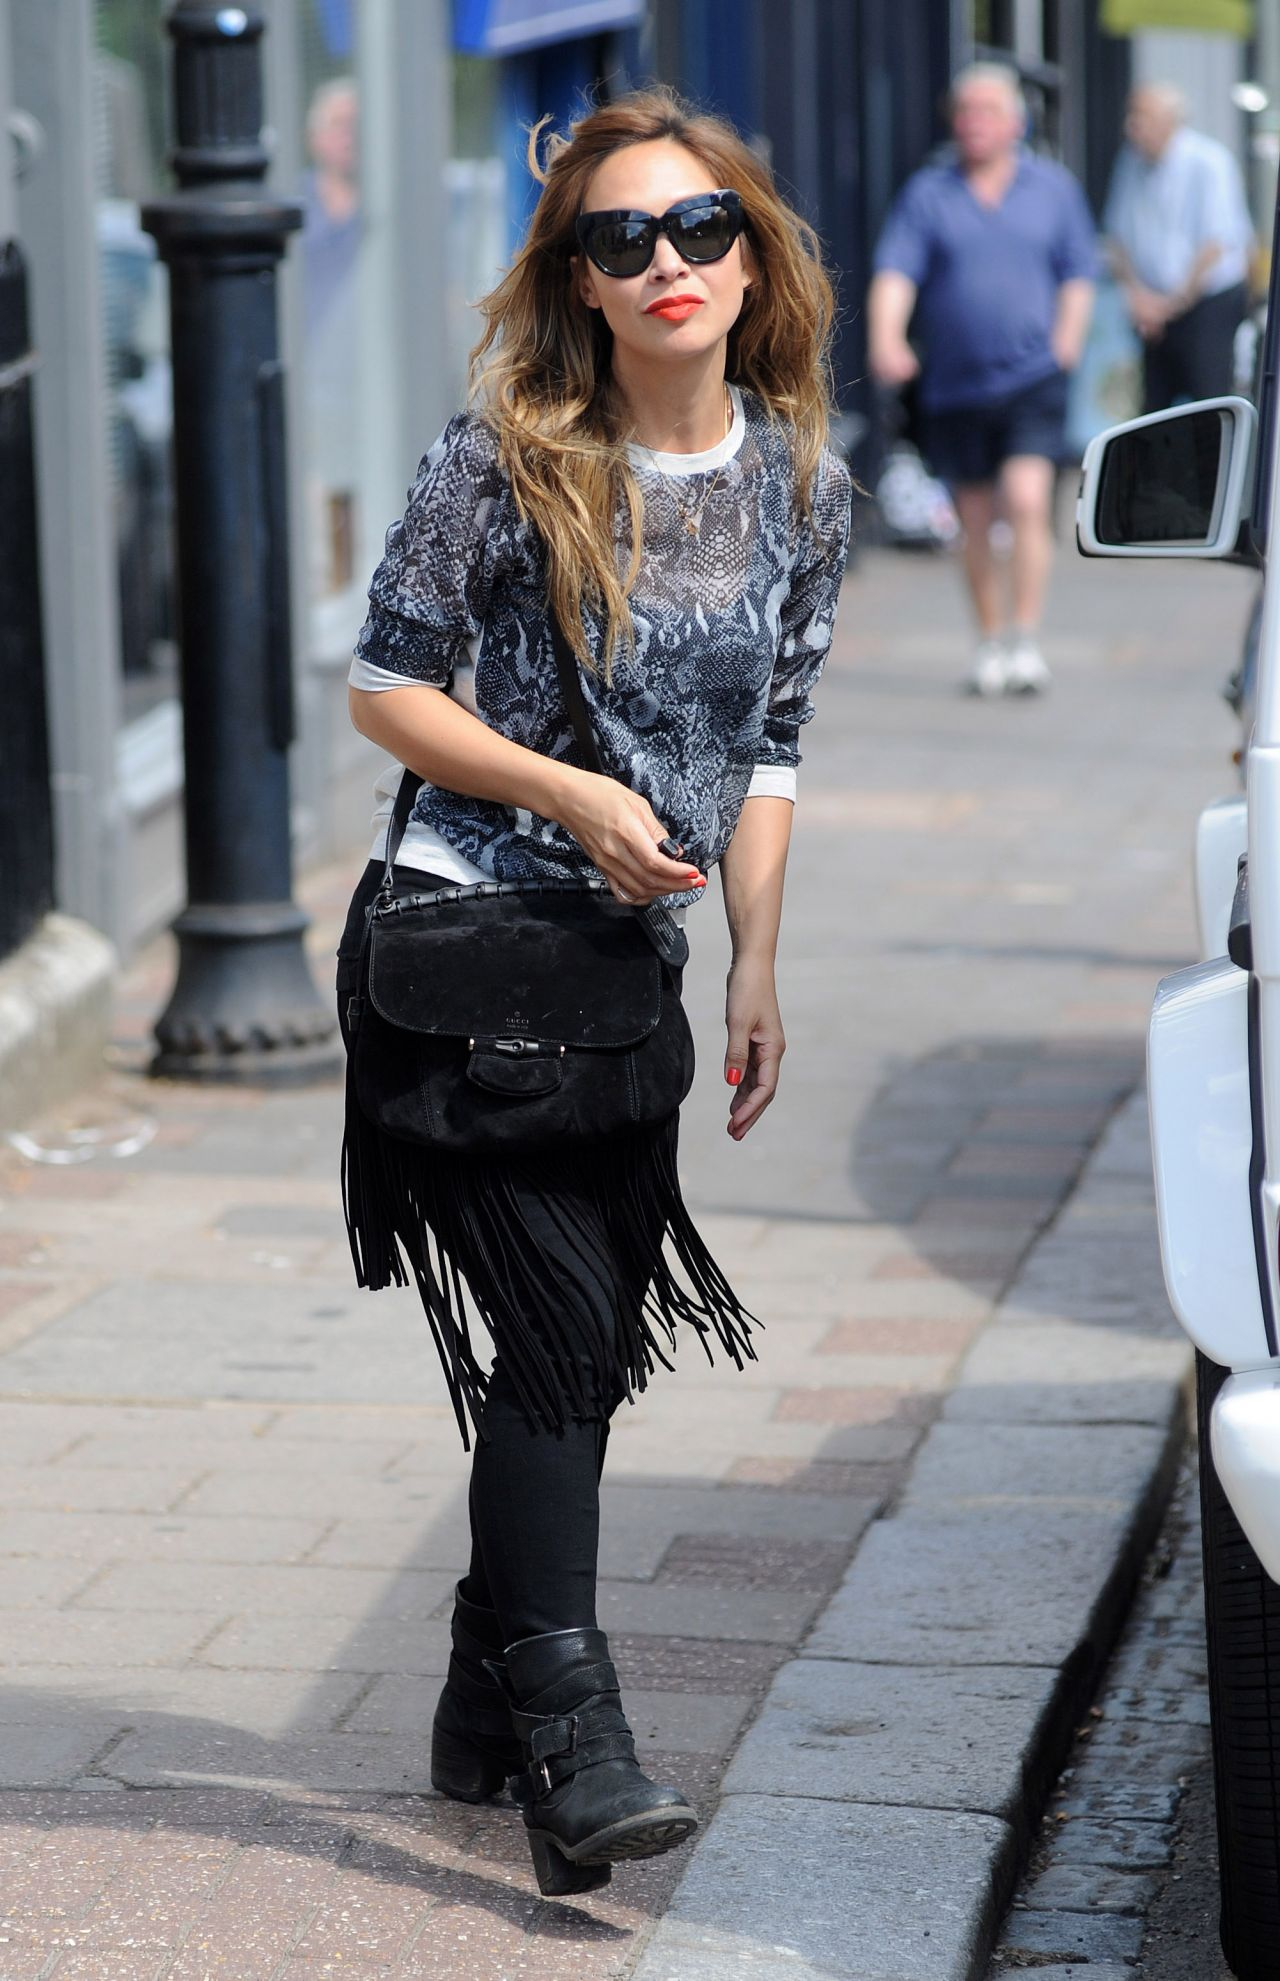 Myleene Klass Street Style - on a School Run in London - June 2014